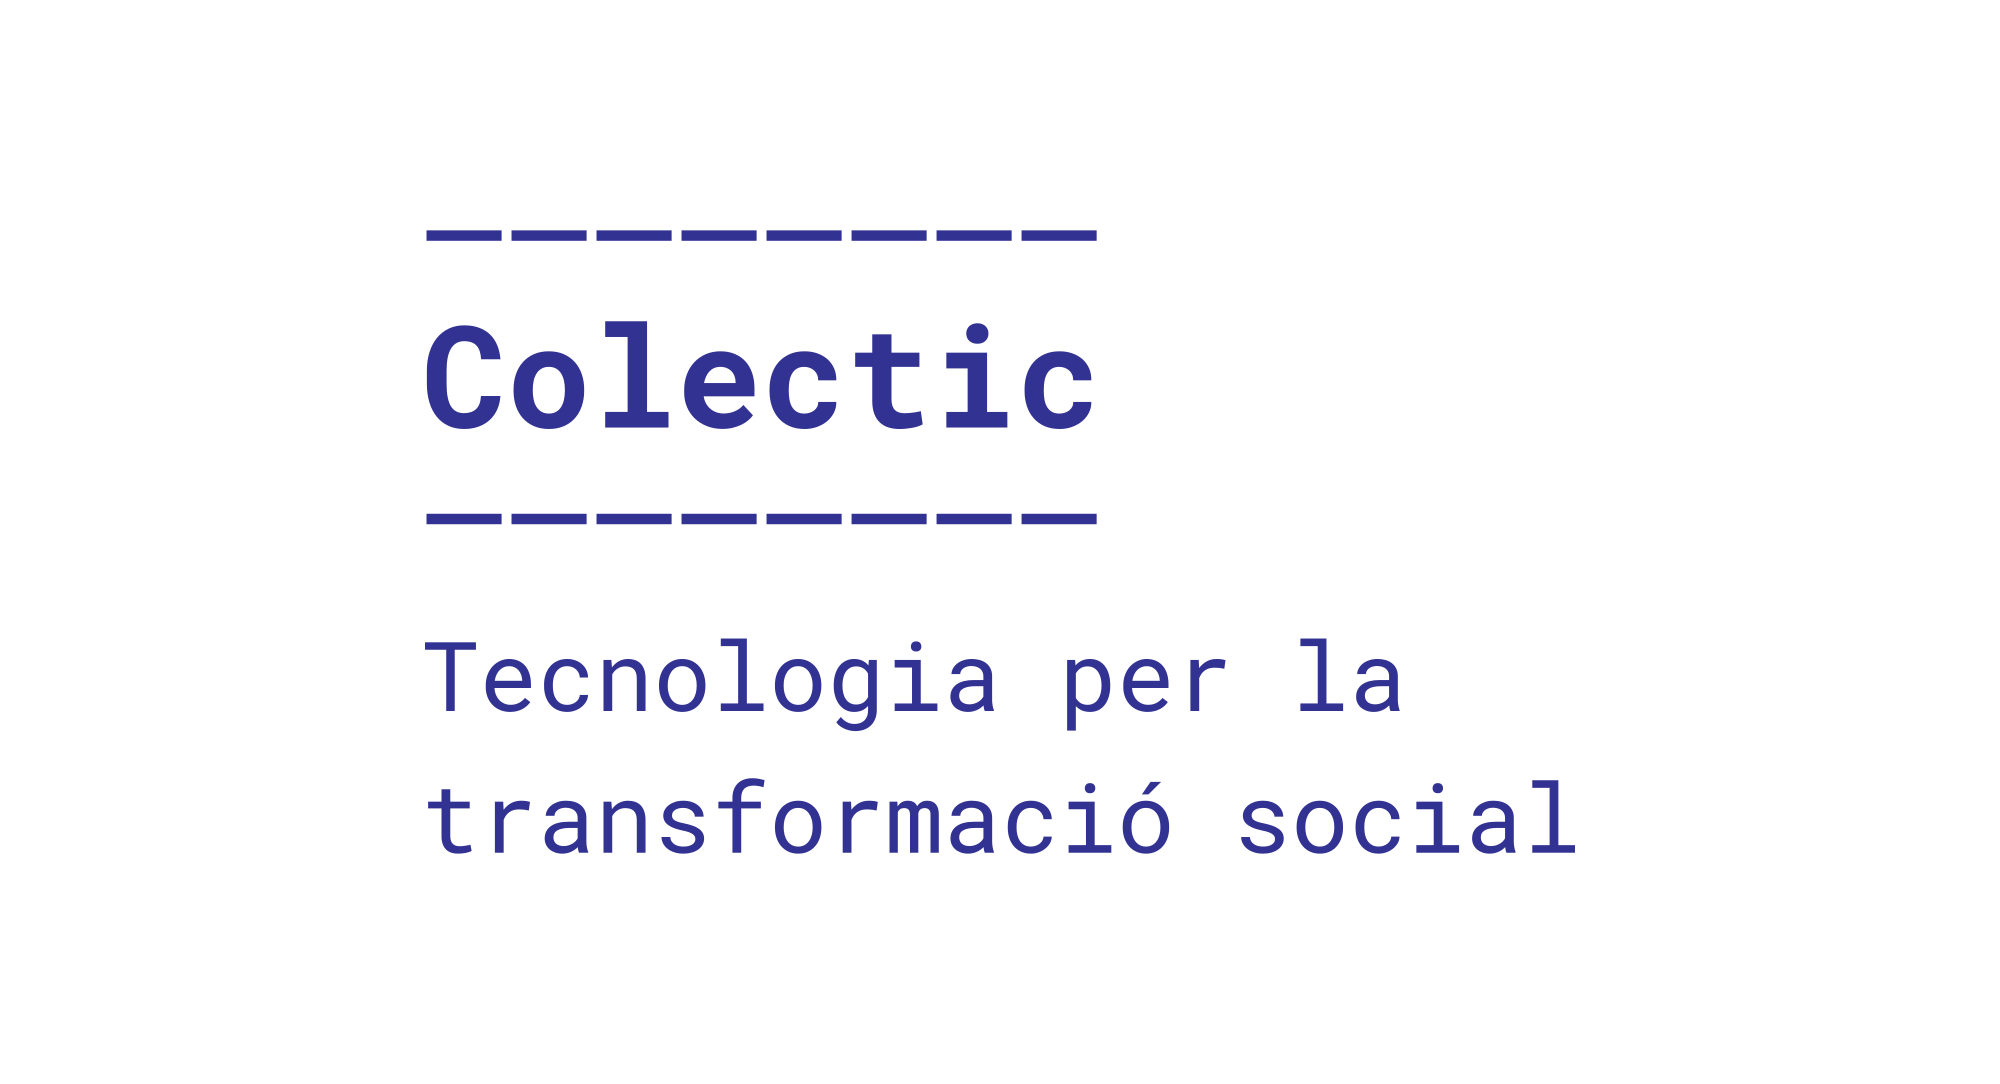 Colectic